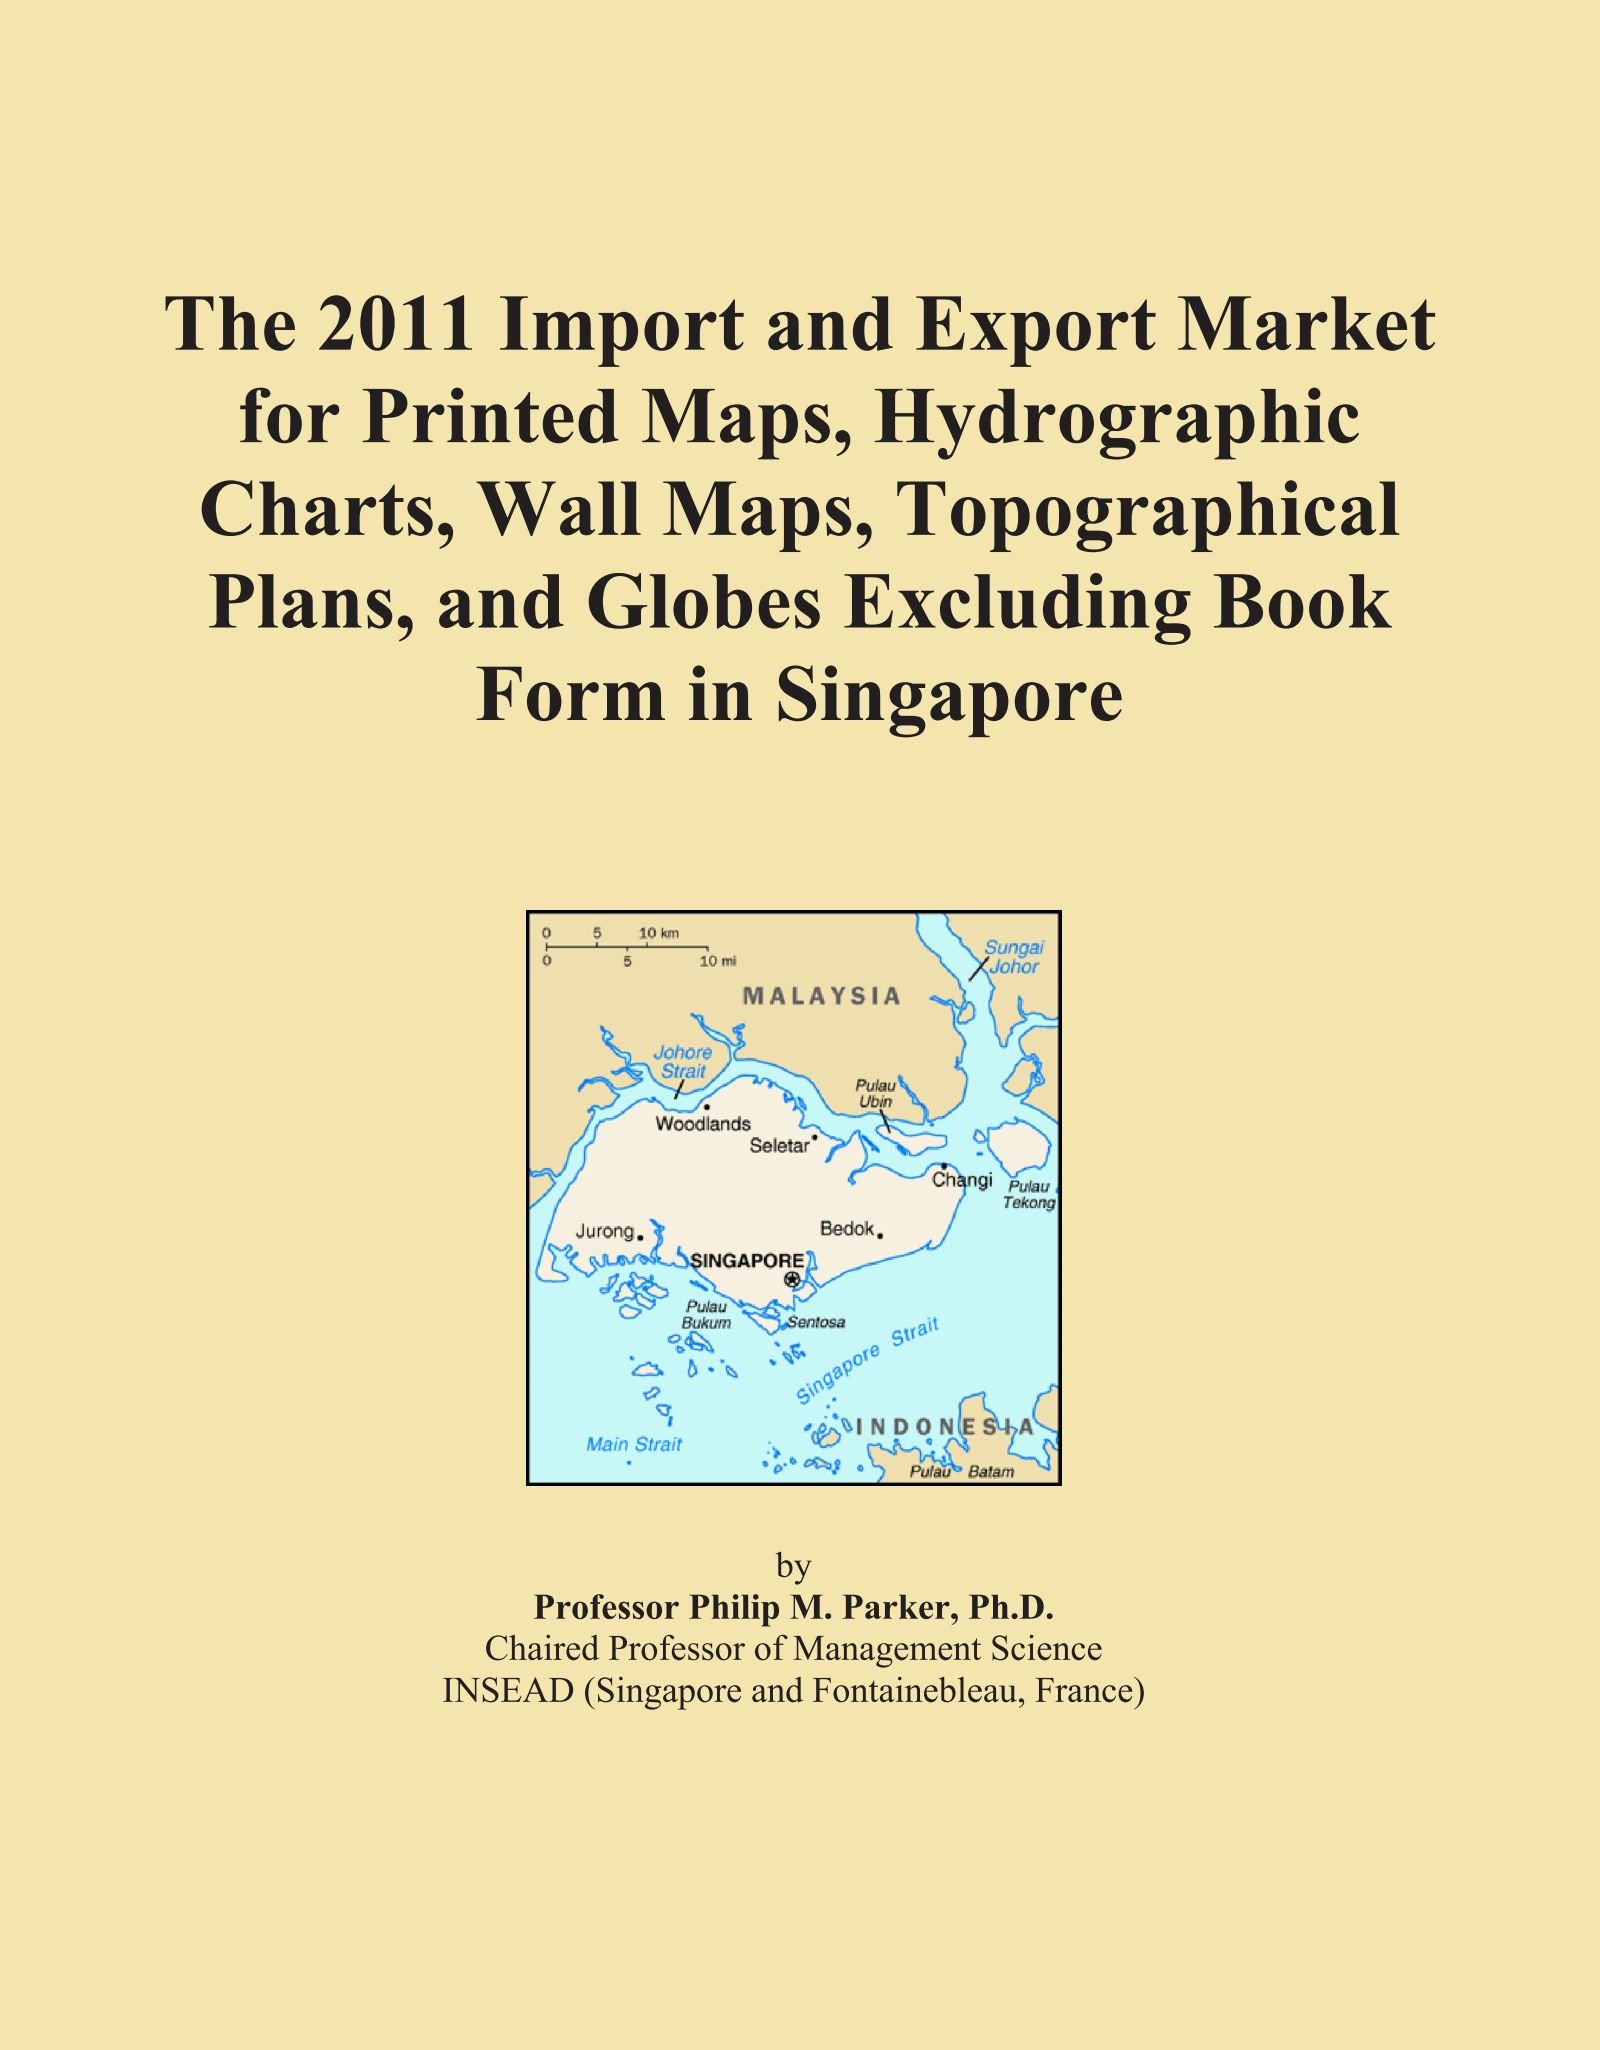 The 2011 Import and Export Market for Printed Maps, Hydrographic Charts, Wall Maps, Topographical Plans, and Globes Excluding Book Form in Singapore ebook